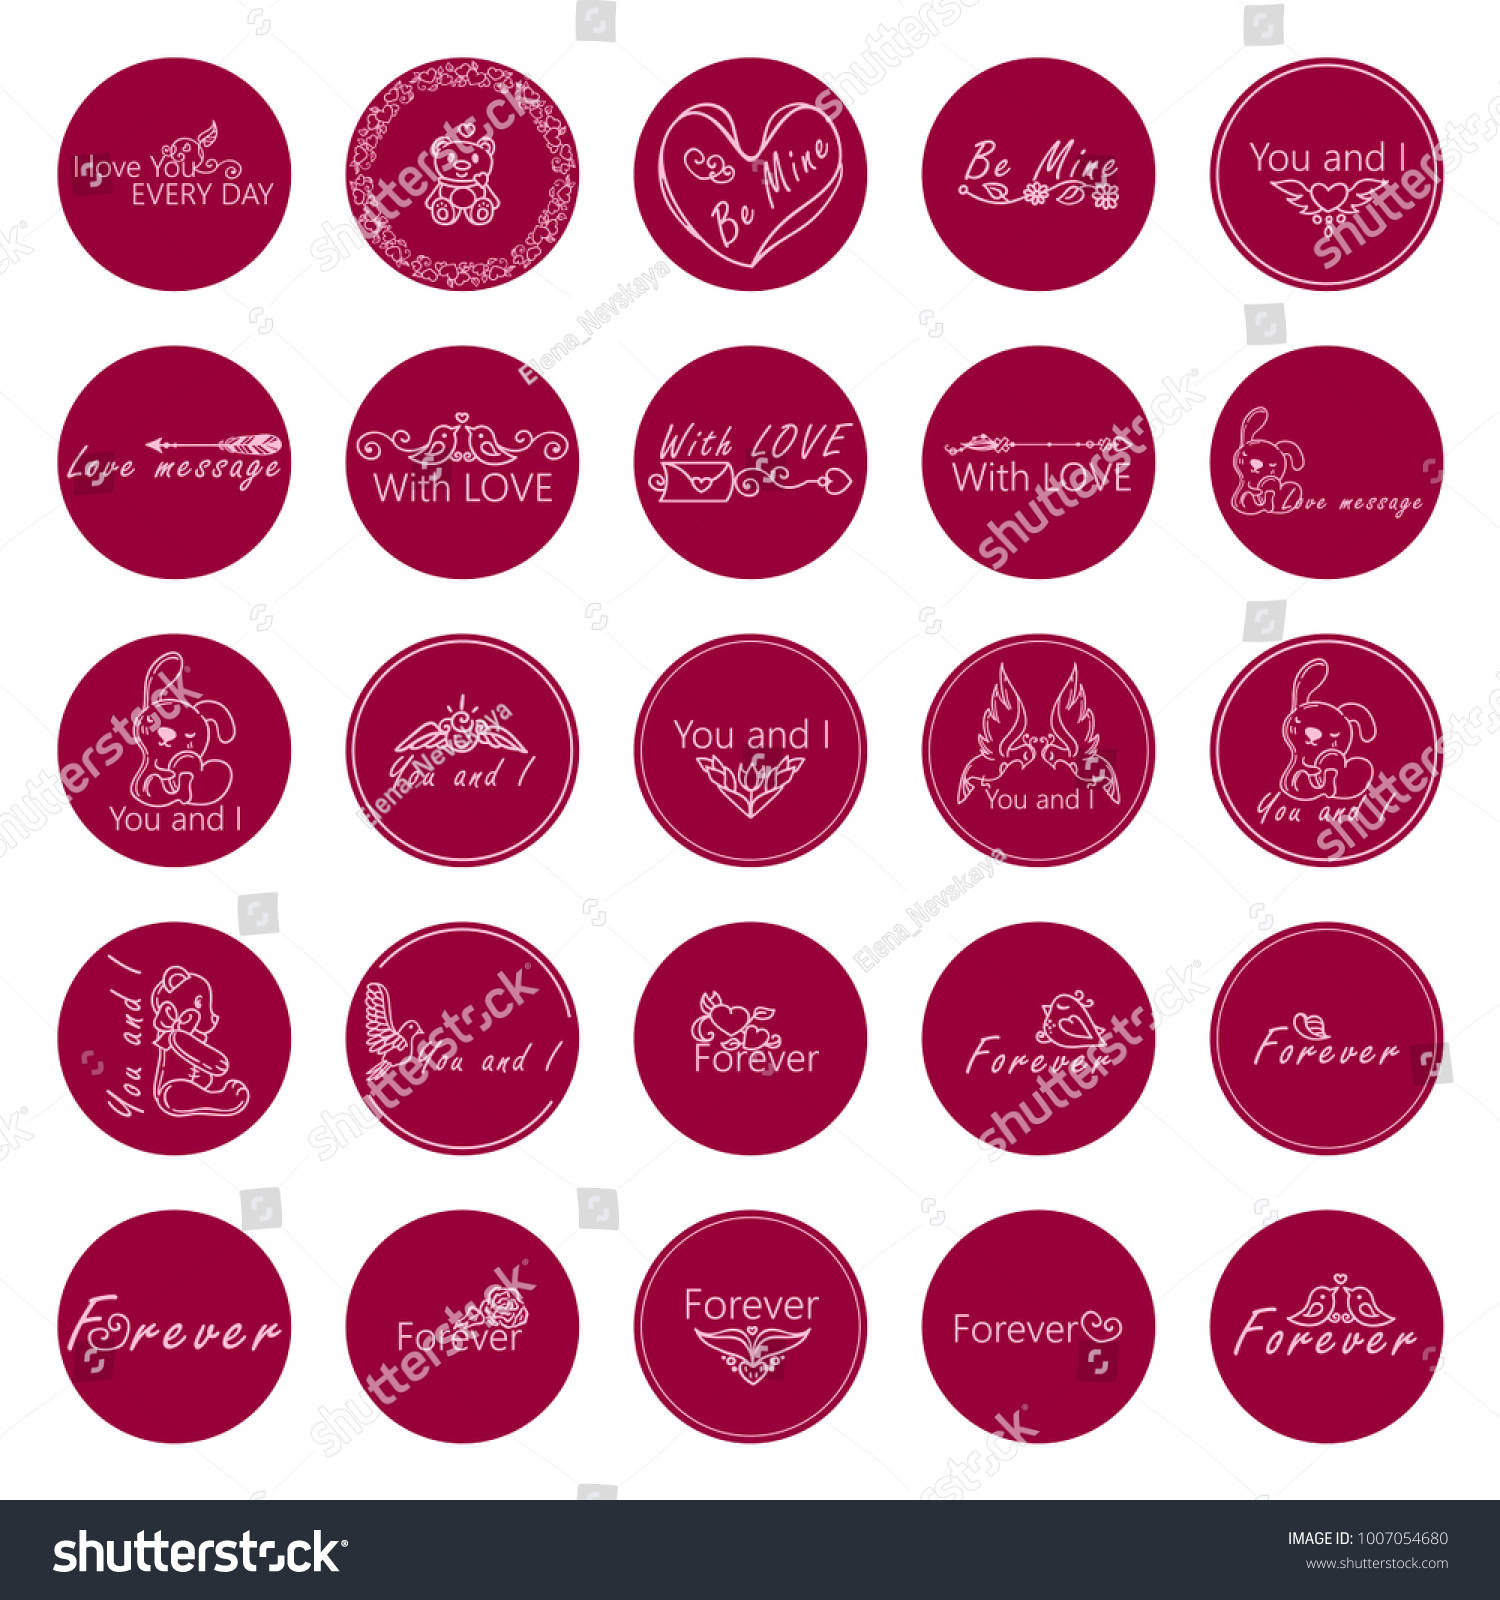 Large vector collection of lovely round labels stickers for valentines day design sweet arts